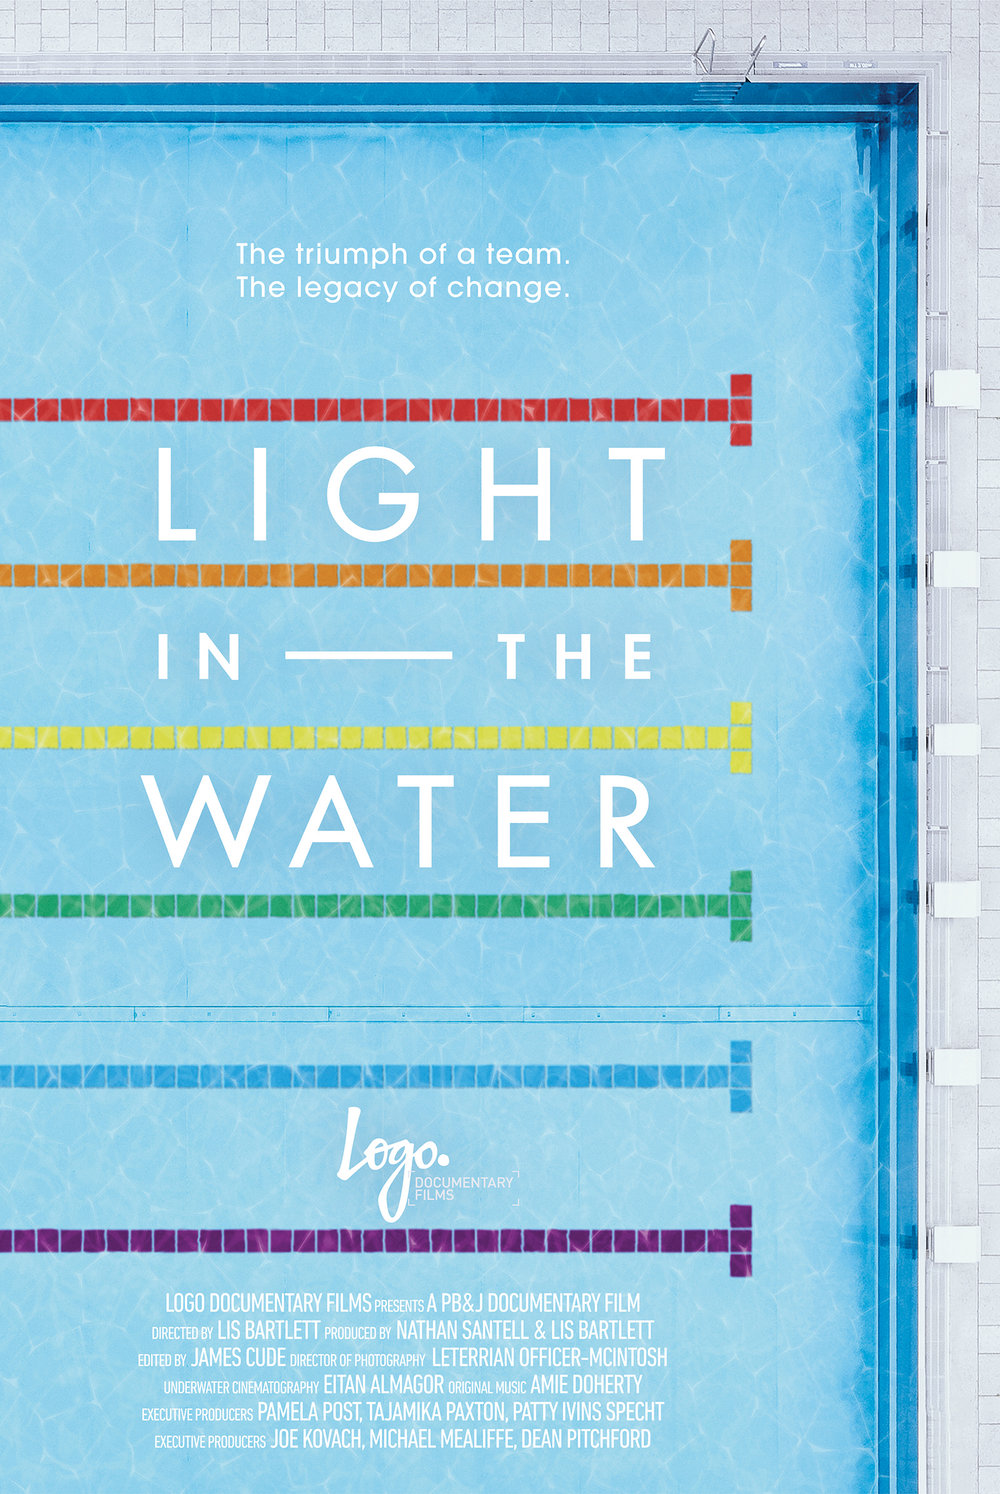 LIGHT IN THE WATER  / Light in the Water looks at how the West Hollywood Aquatics club grew from the first openly gay swim team and water polo club into a force for fighting injustice in athletics. Poster Design by Ryan Bernis.